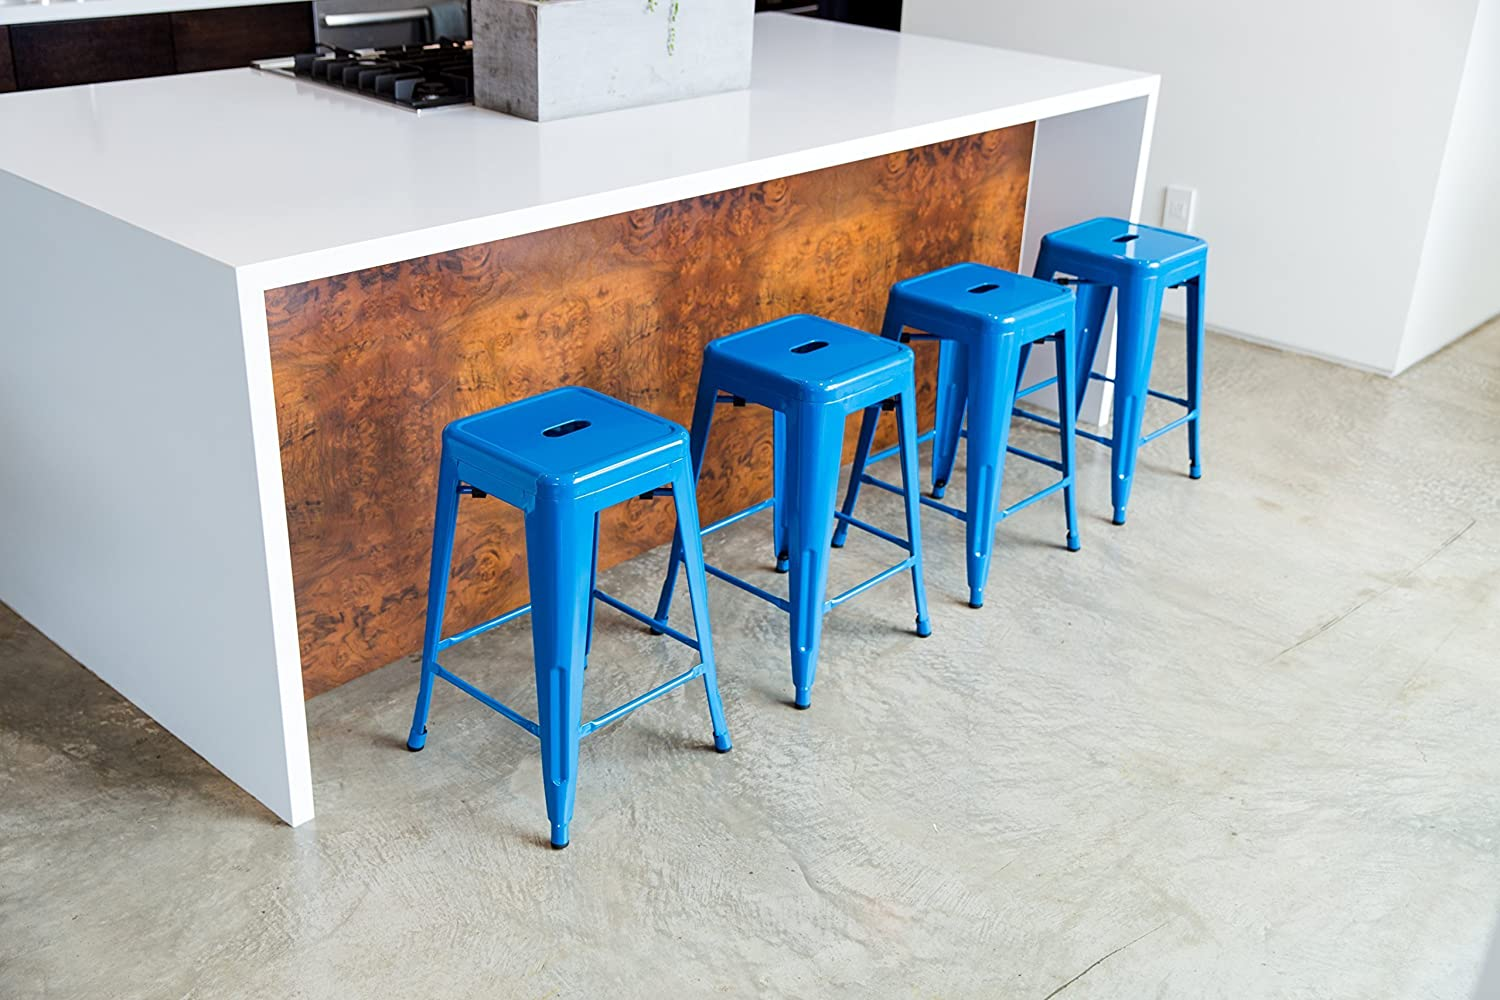 Amazon.com: UrbanMod 24 Inch Bar Stools for Kitchen Counter Height ...